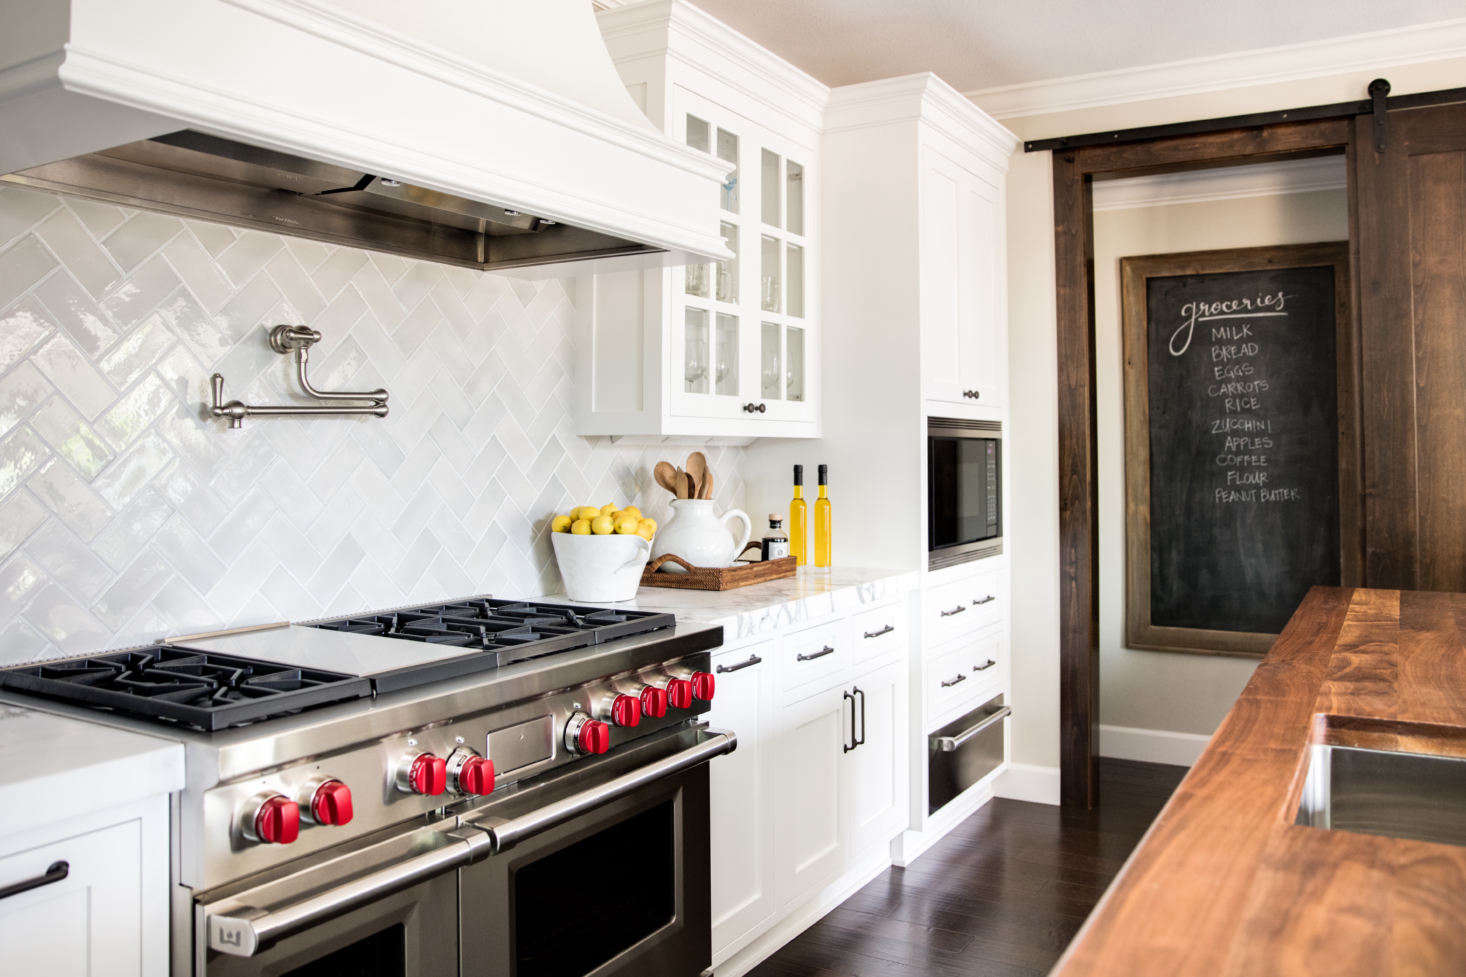 - The Best Sources For Subway Tile, According To Architects